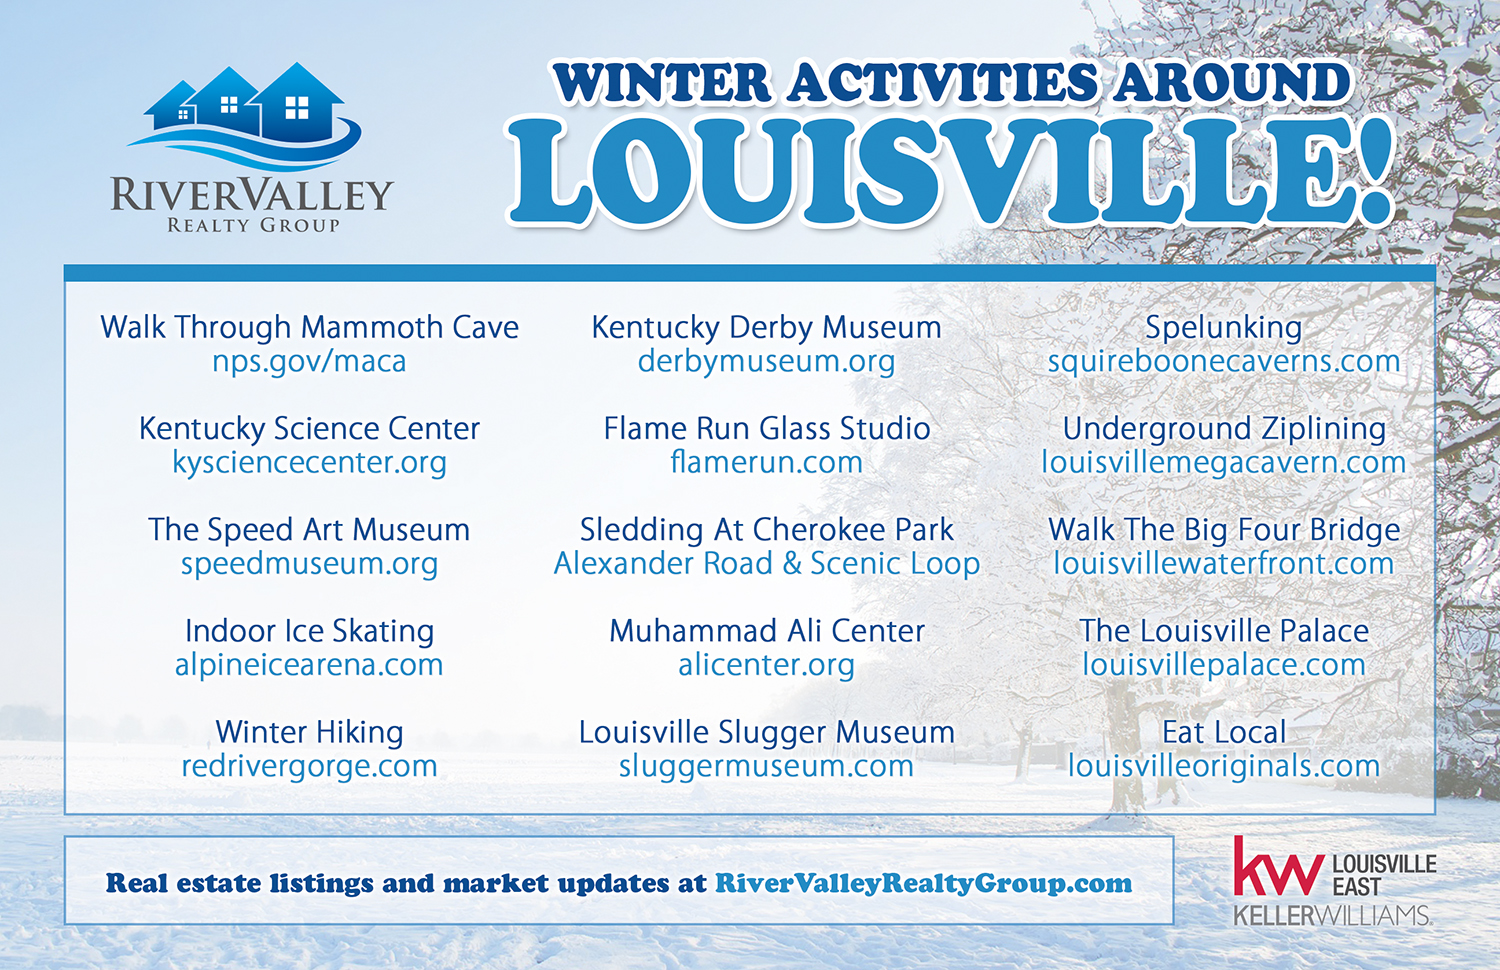 Winter in Louisville